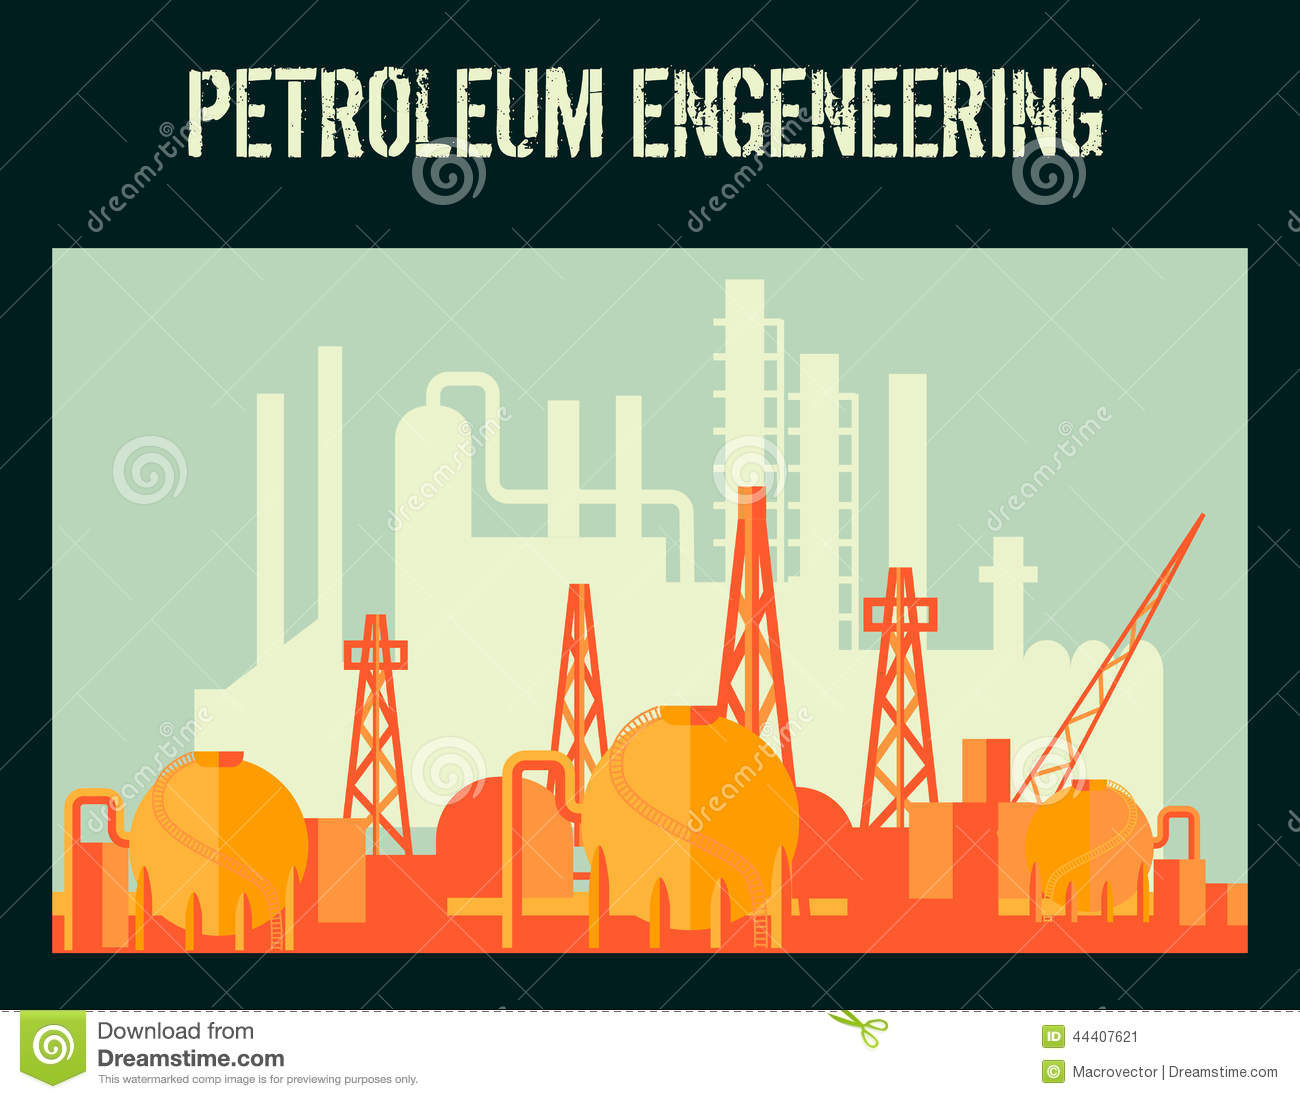 Oil Industry Poster Stock Vector - Image: 44407621